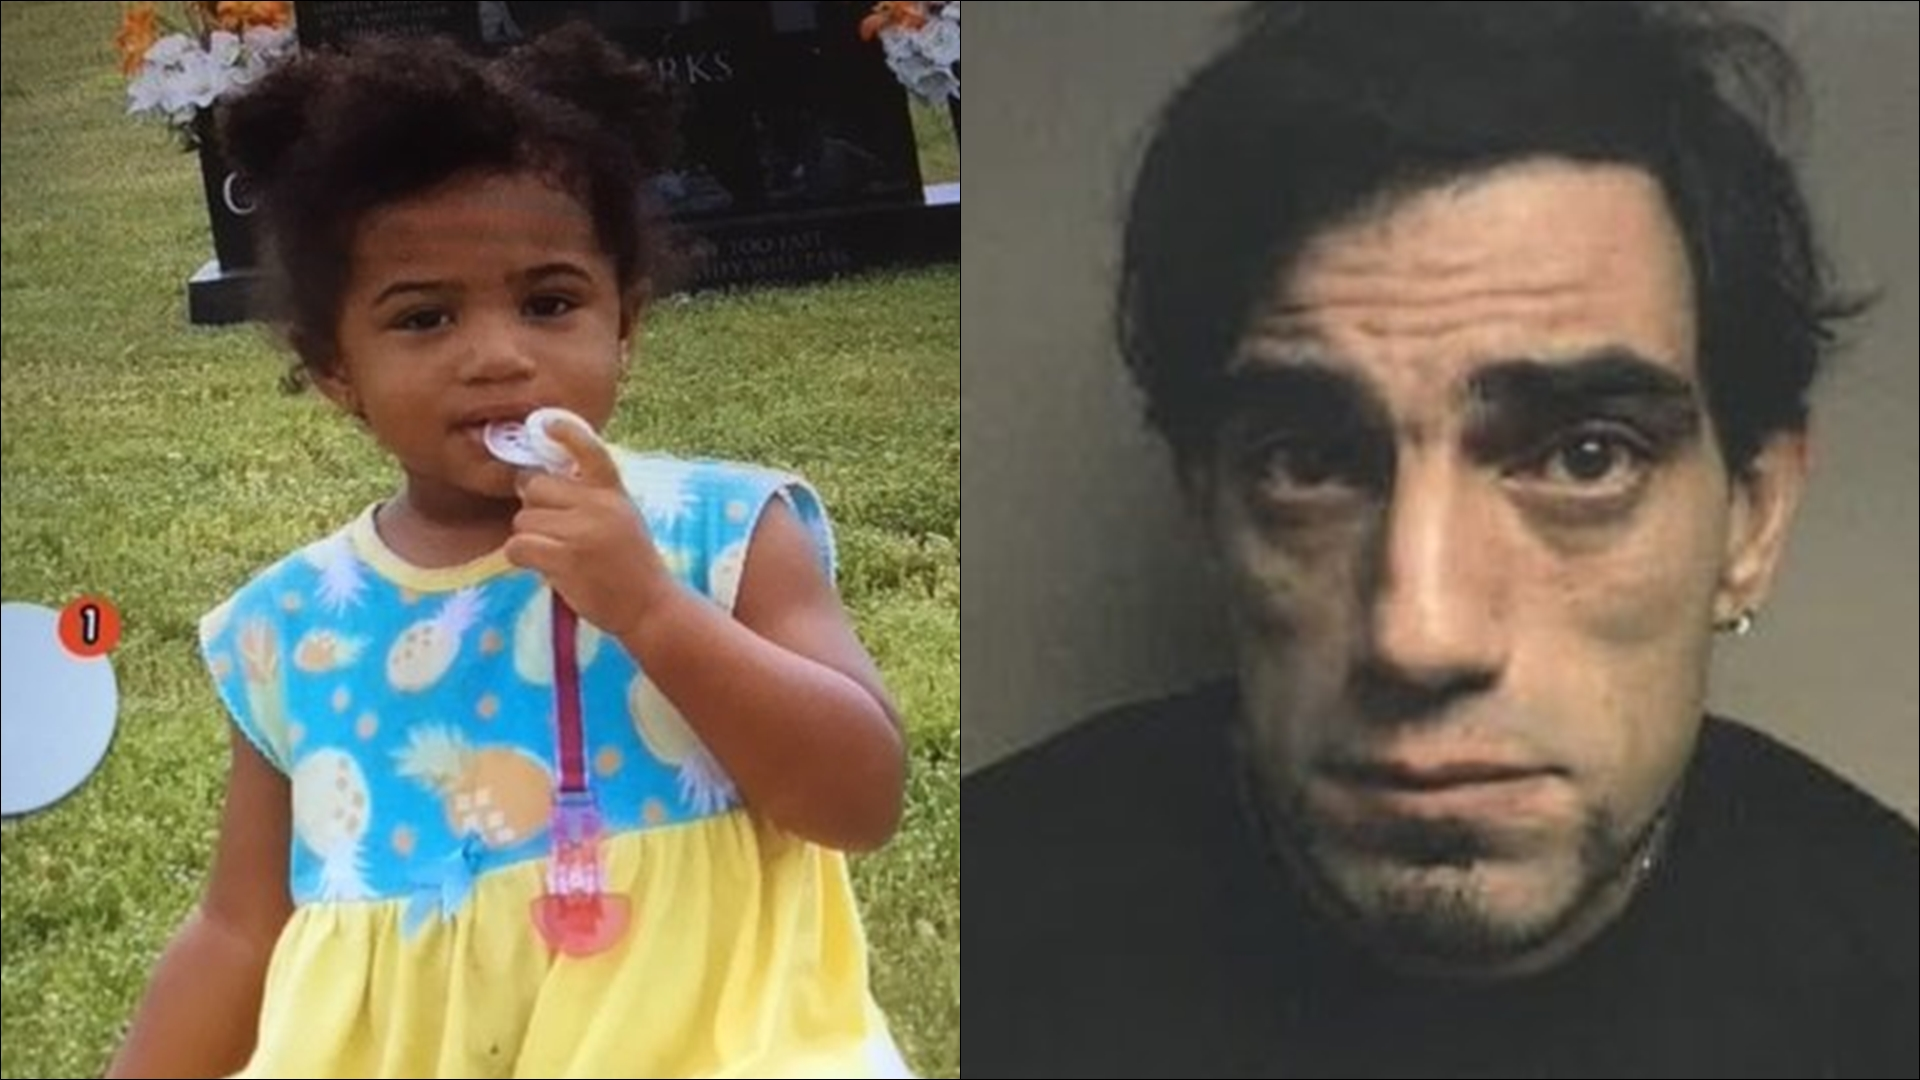 UPDATE: TBI adds kidnapping suspect to 'Most Wanted List', reward